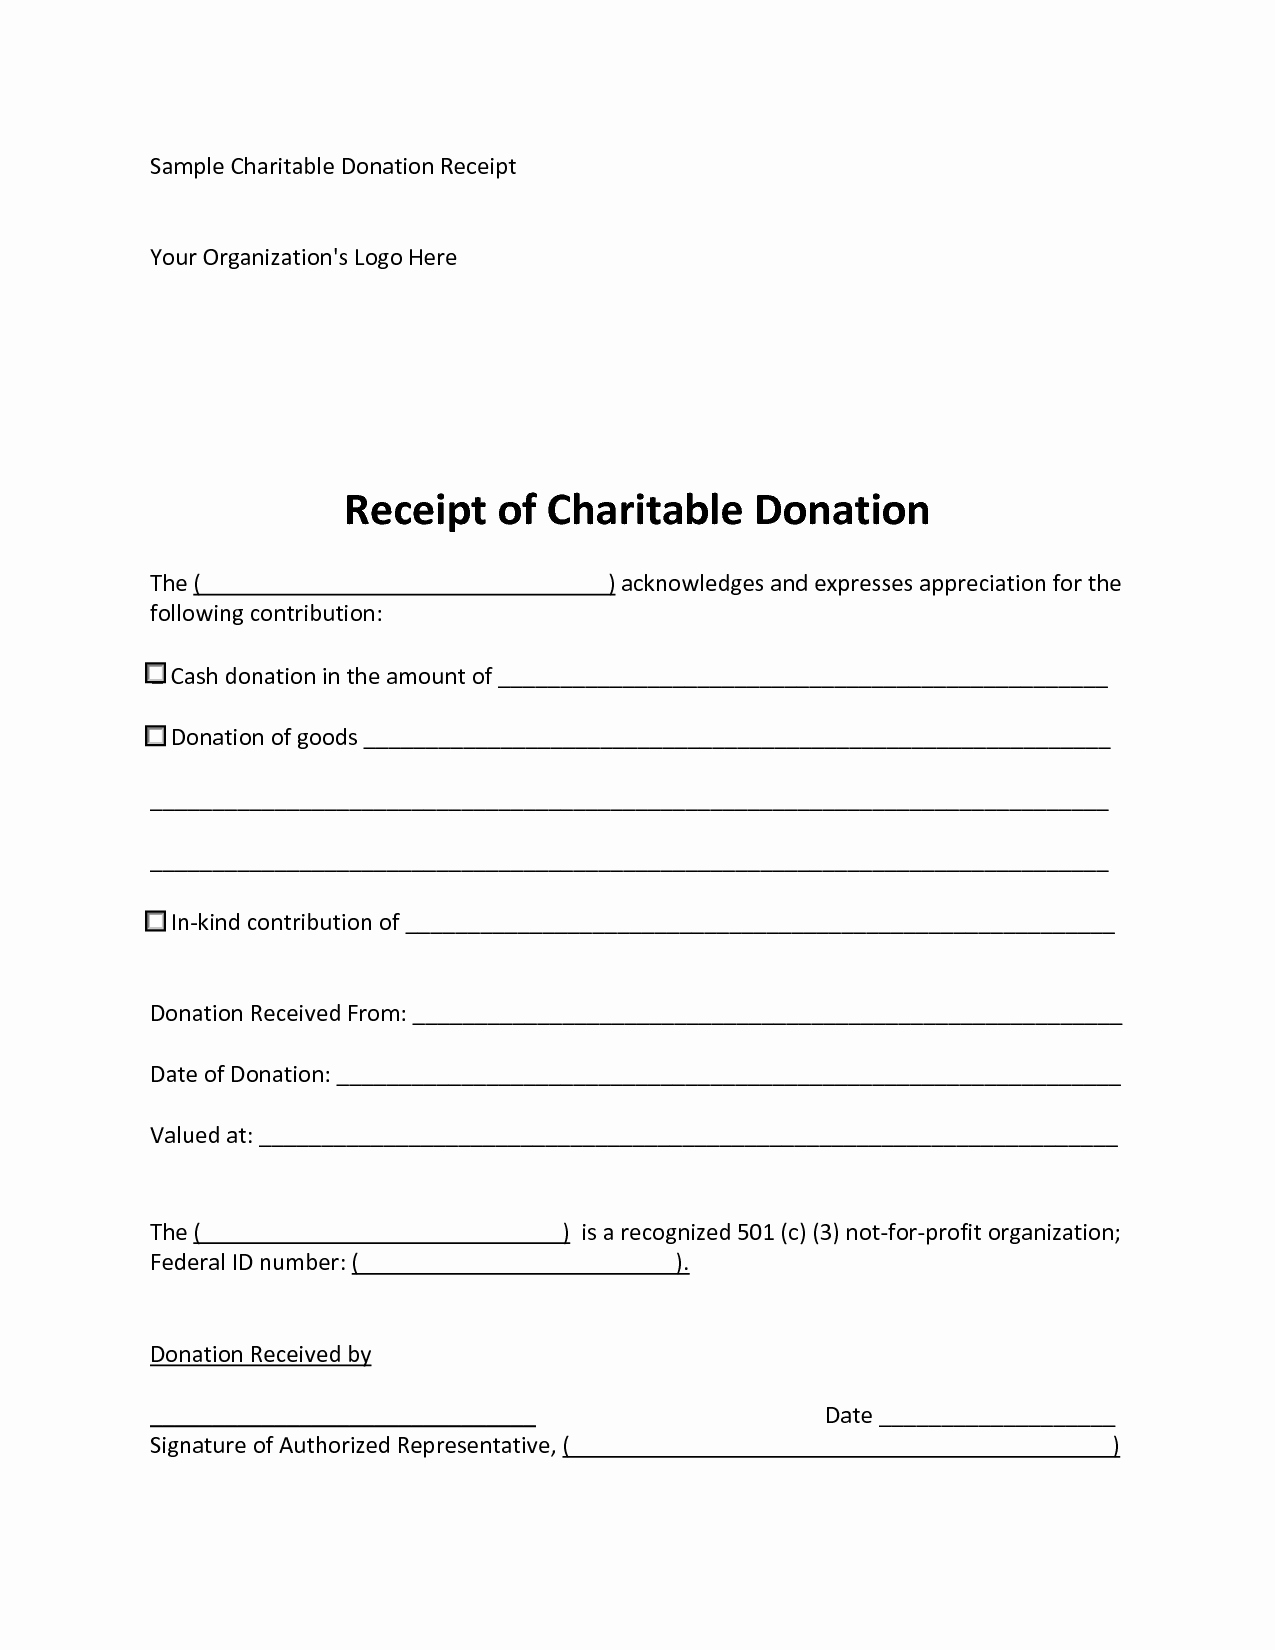 Charitable Contribution Receipt Template Luxury 6 Best Of 501c3 Donation Receipt Template Charity